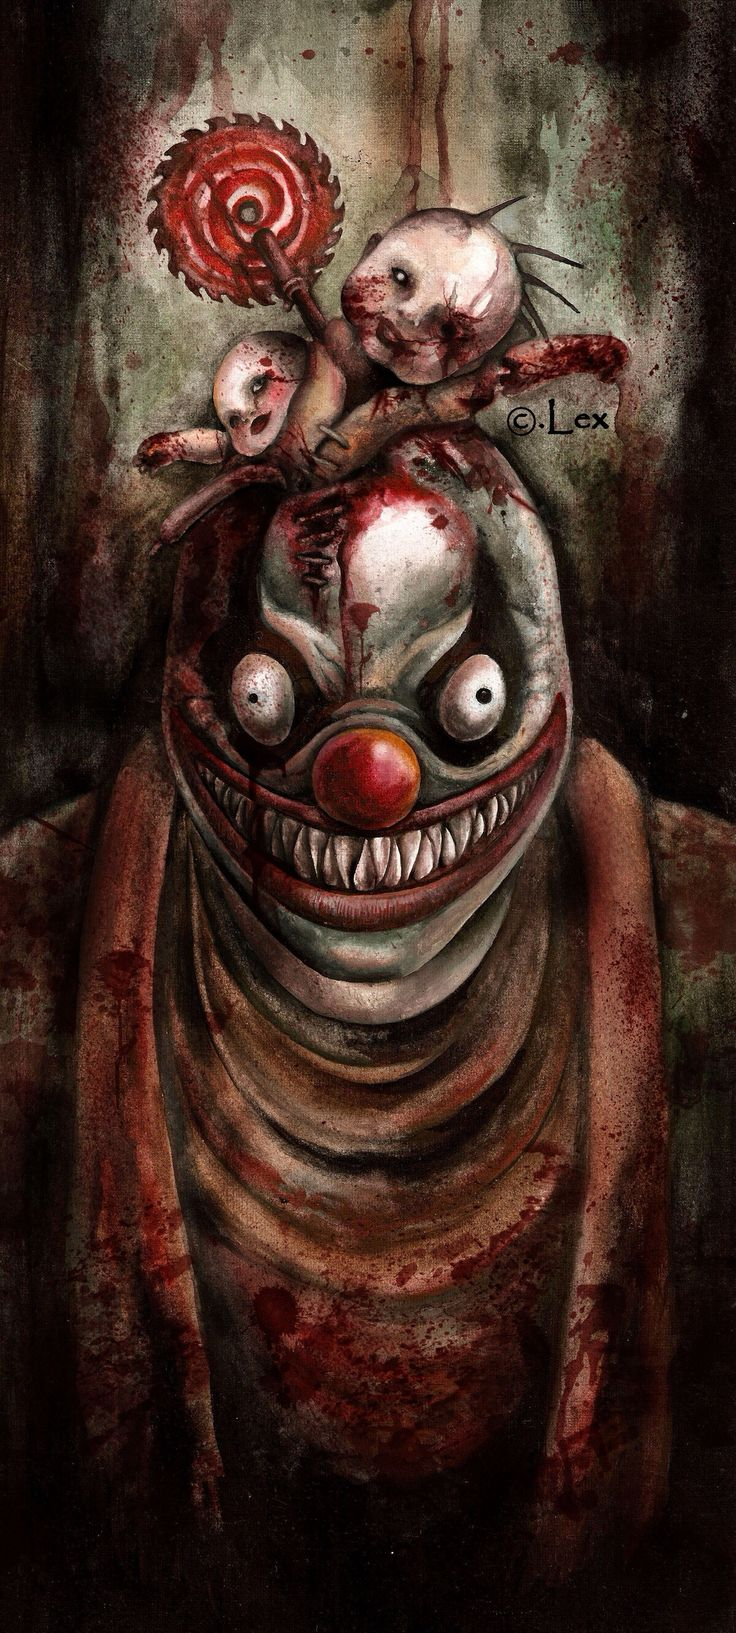 1000+ images about Creepy Clown Art on Pinterest | Stephen ... |Creepy Clown Painting